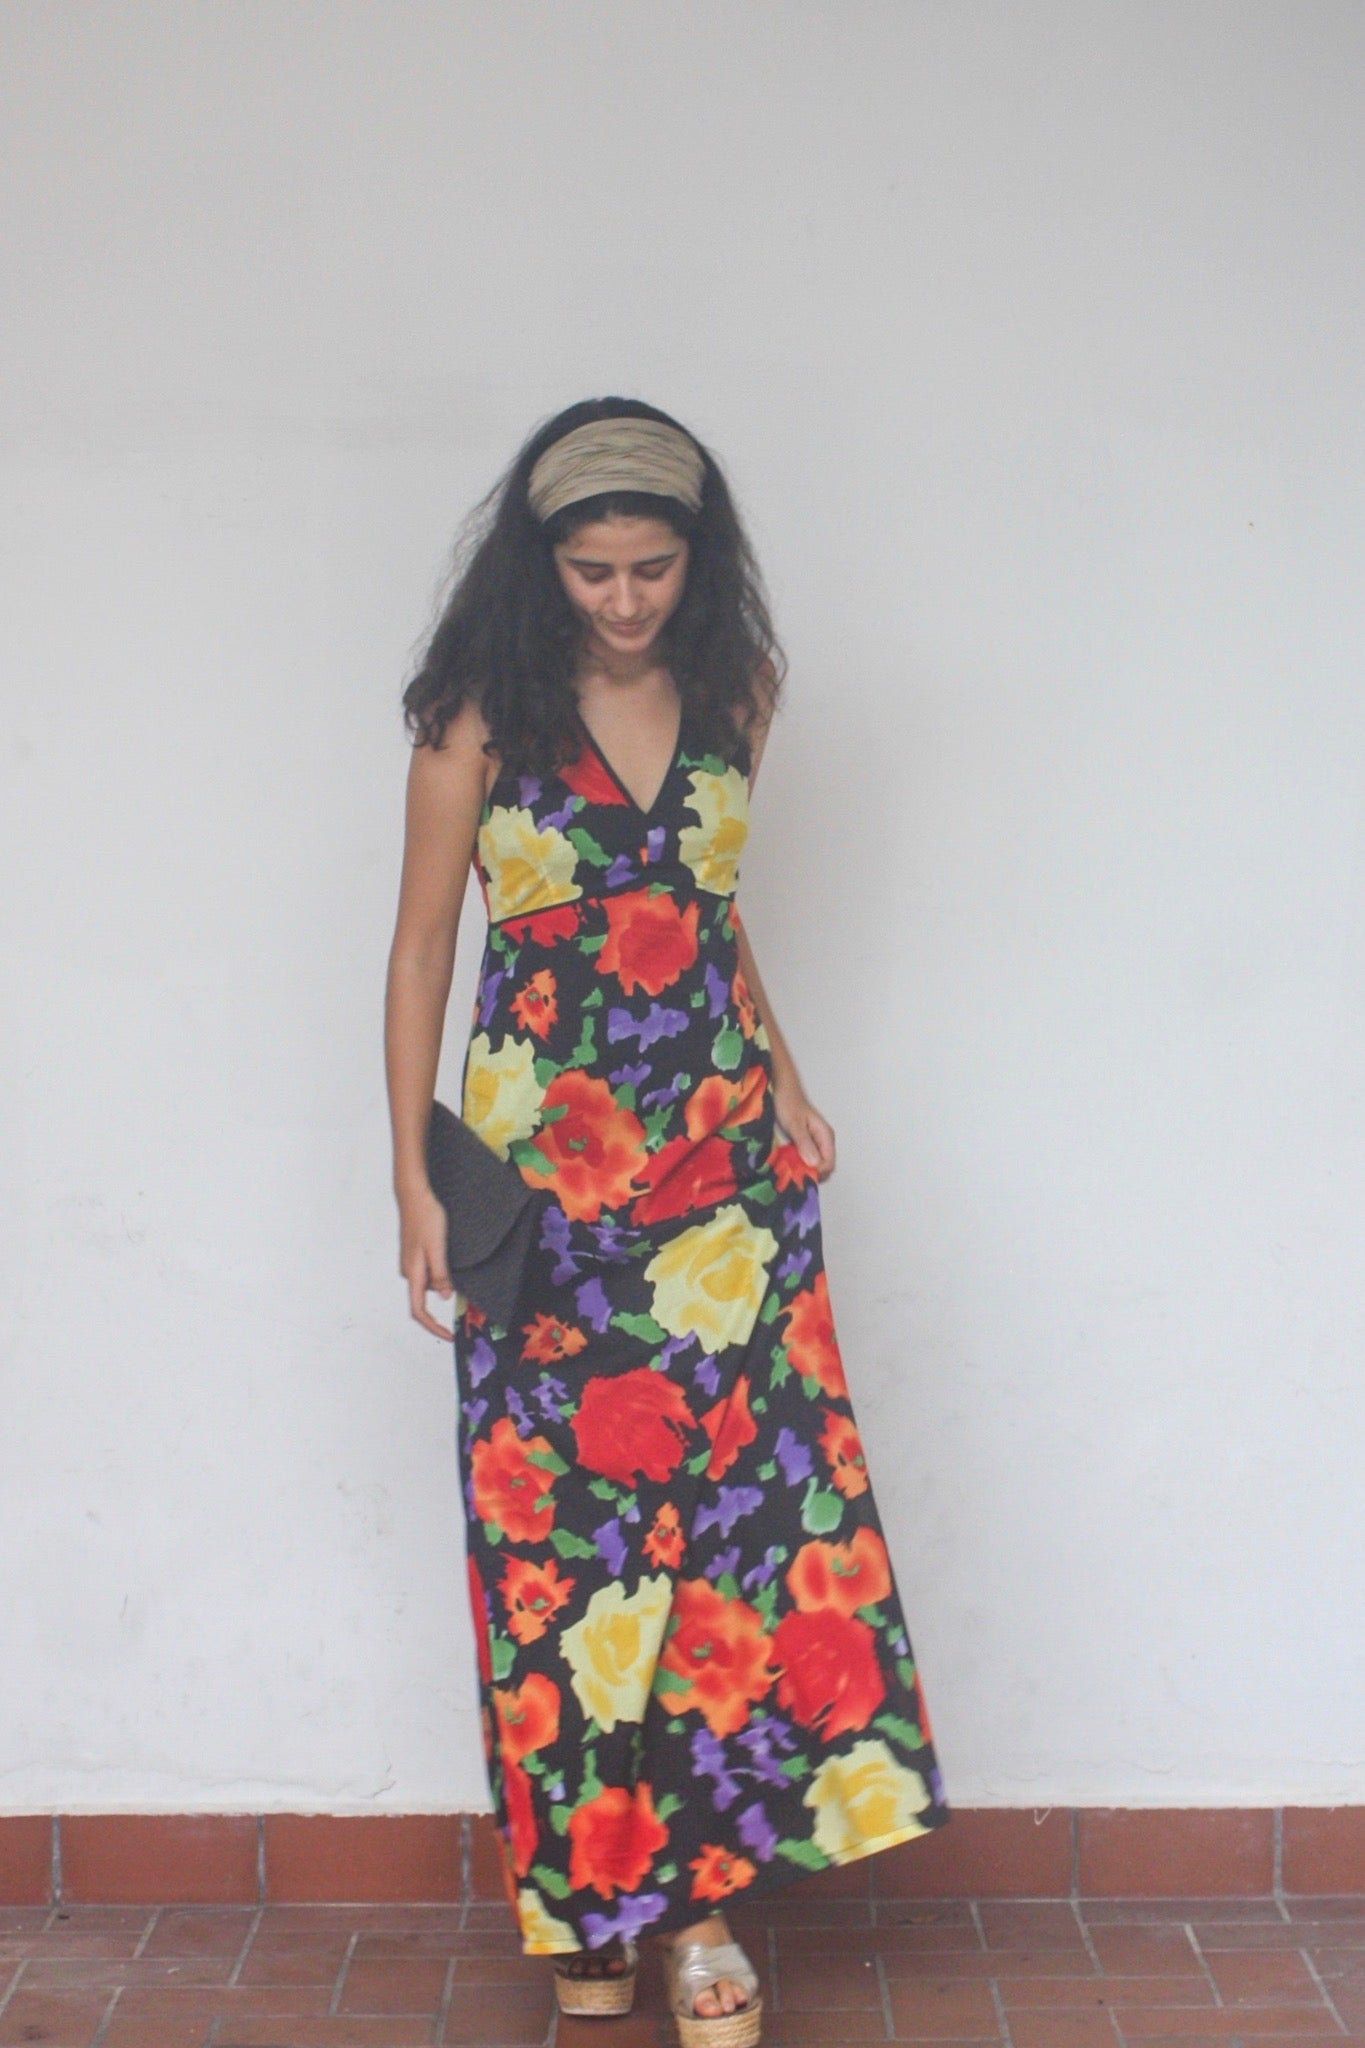 Maxi Dress, Cotton, Beach to Bar, Halter neck, Print, Bright, Black, Floral Print, Resort Wear, Beach Wear